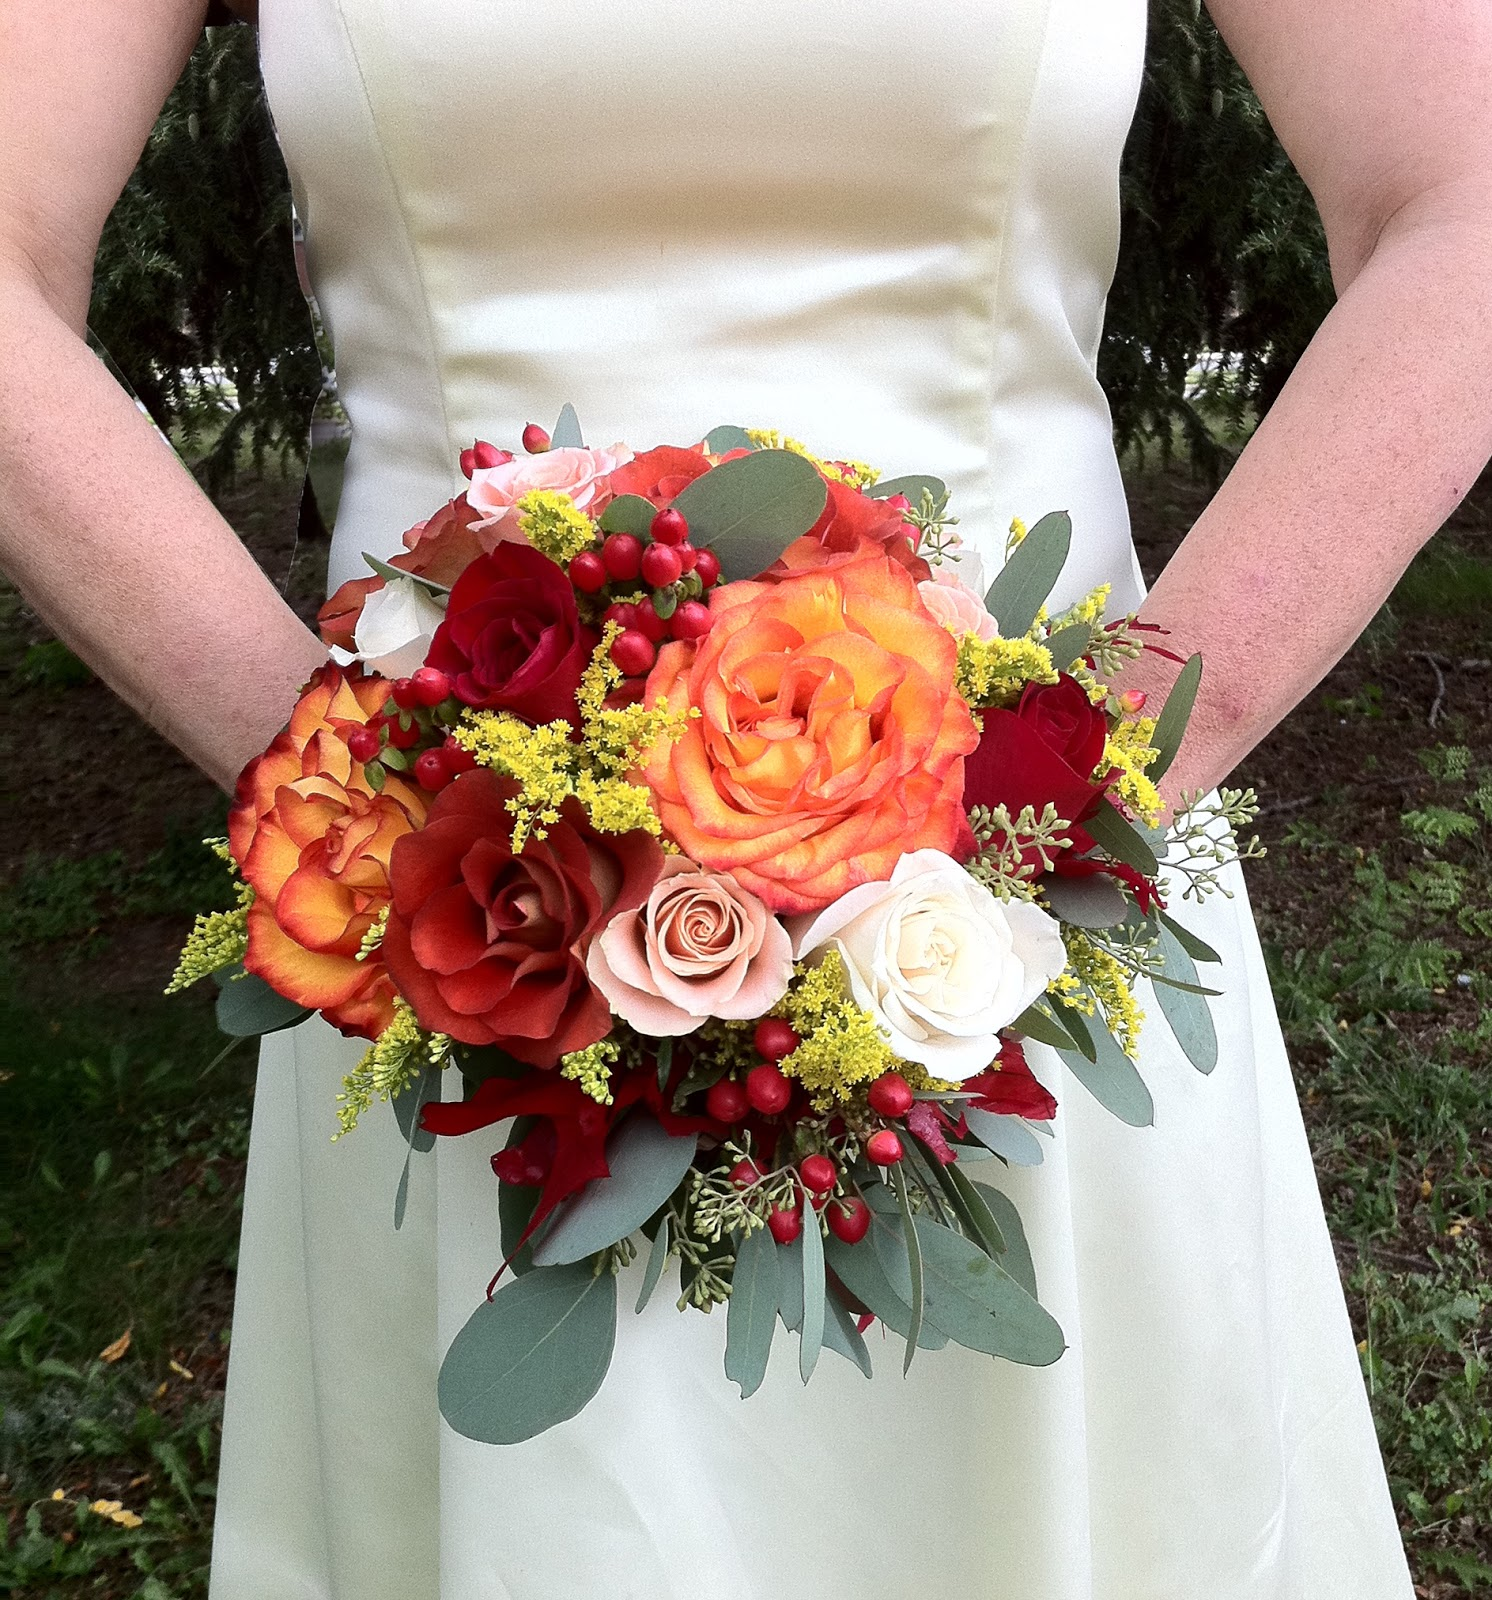 Wedding Flowers Autumn: The Enchanted Petal: Here Comes The Autumn Bride